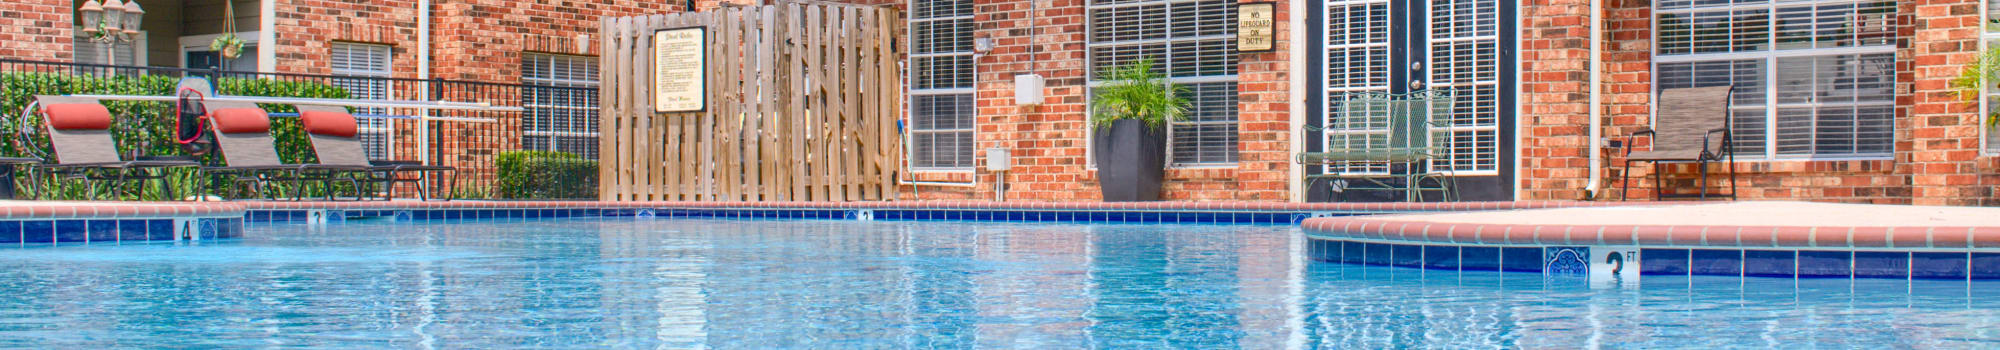 Pet-friendly apartments at The Lexington Apartment Homes in Biloxi, Mississippi